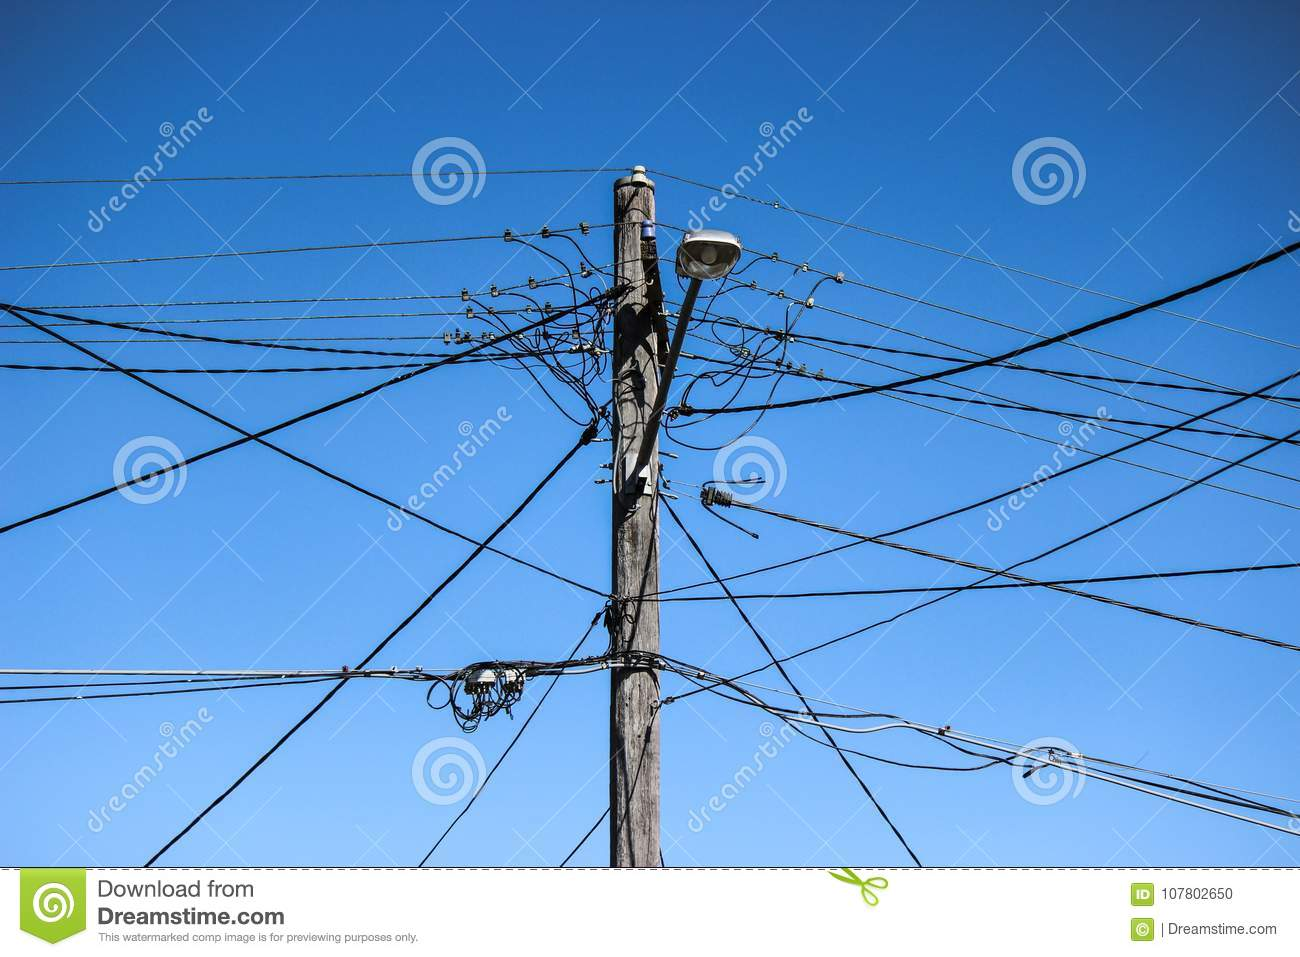 hight resolution of high voltage electricity pole with complex wiring street lamp and blue sky